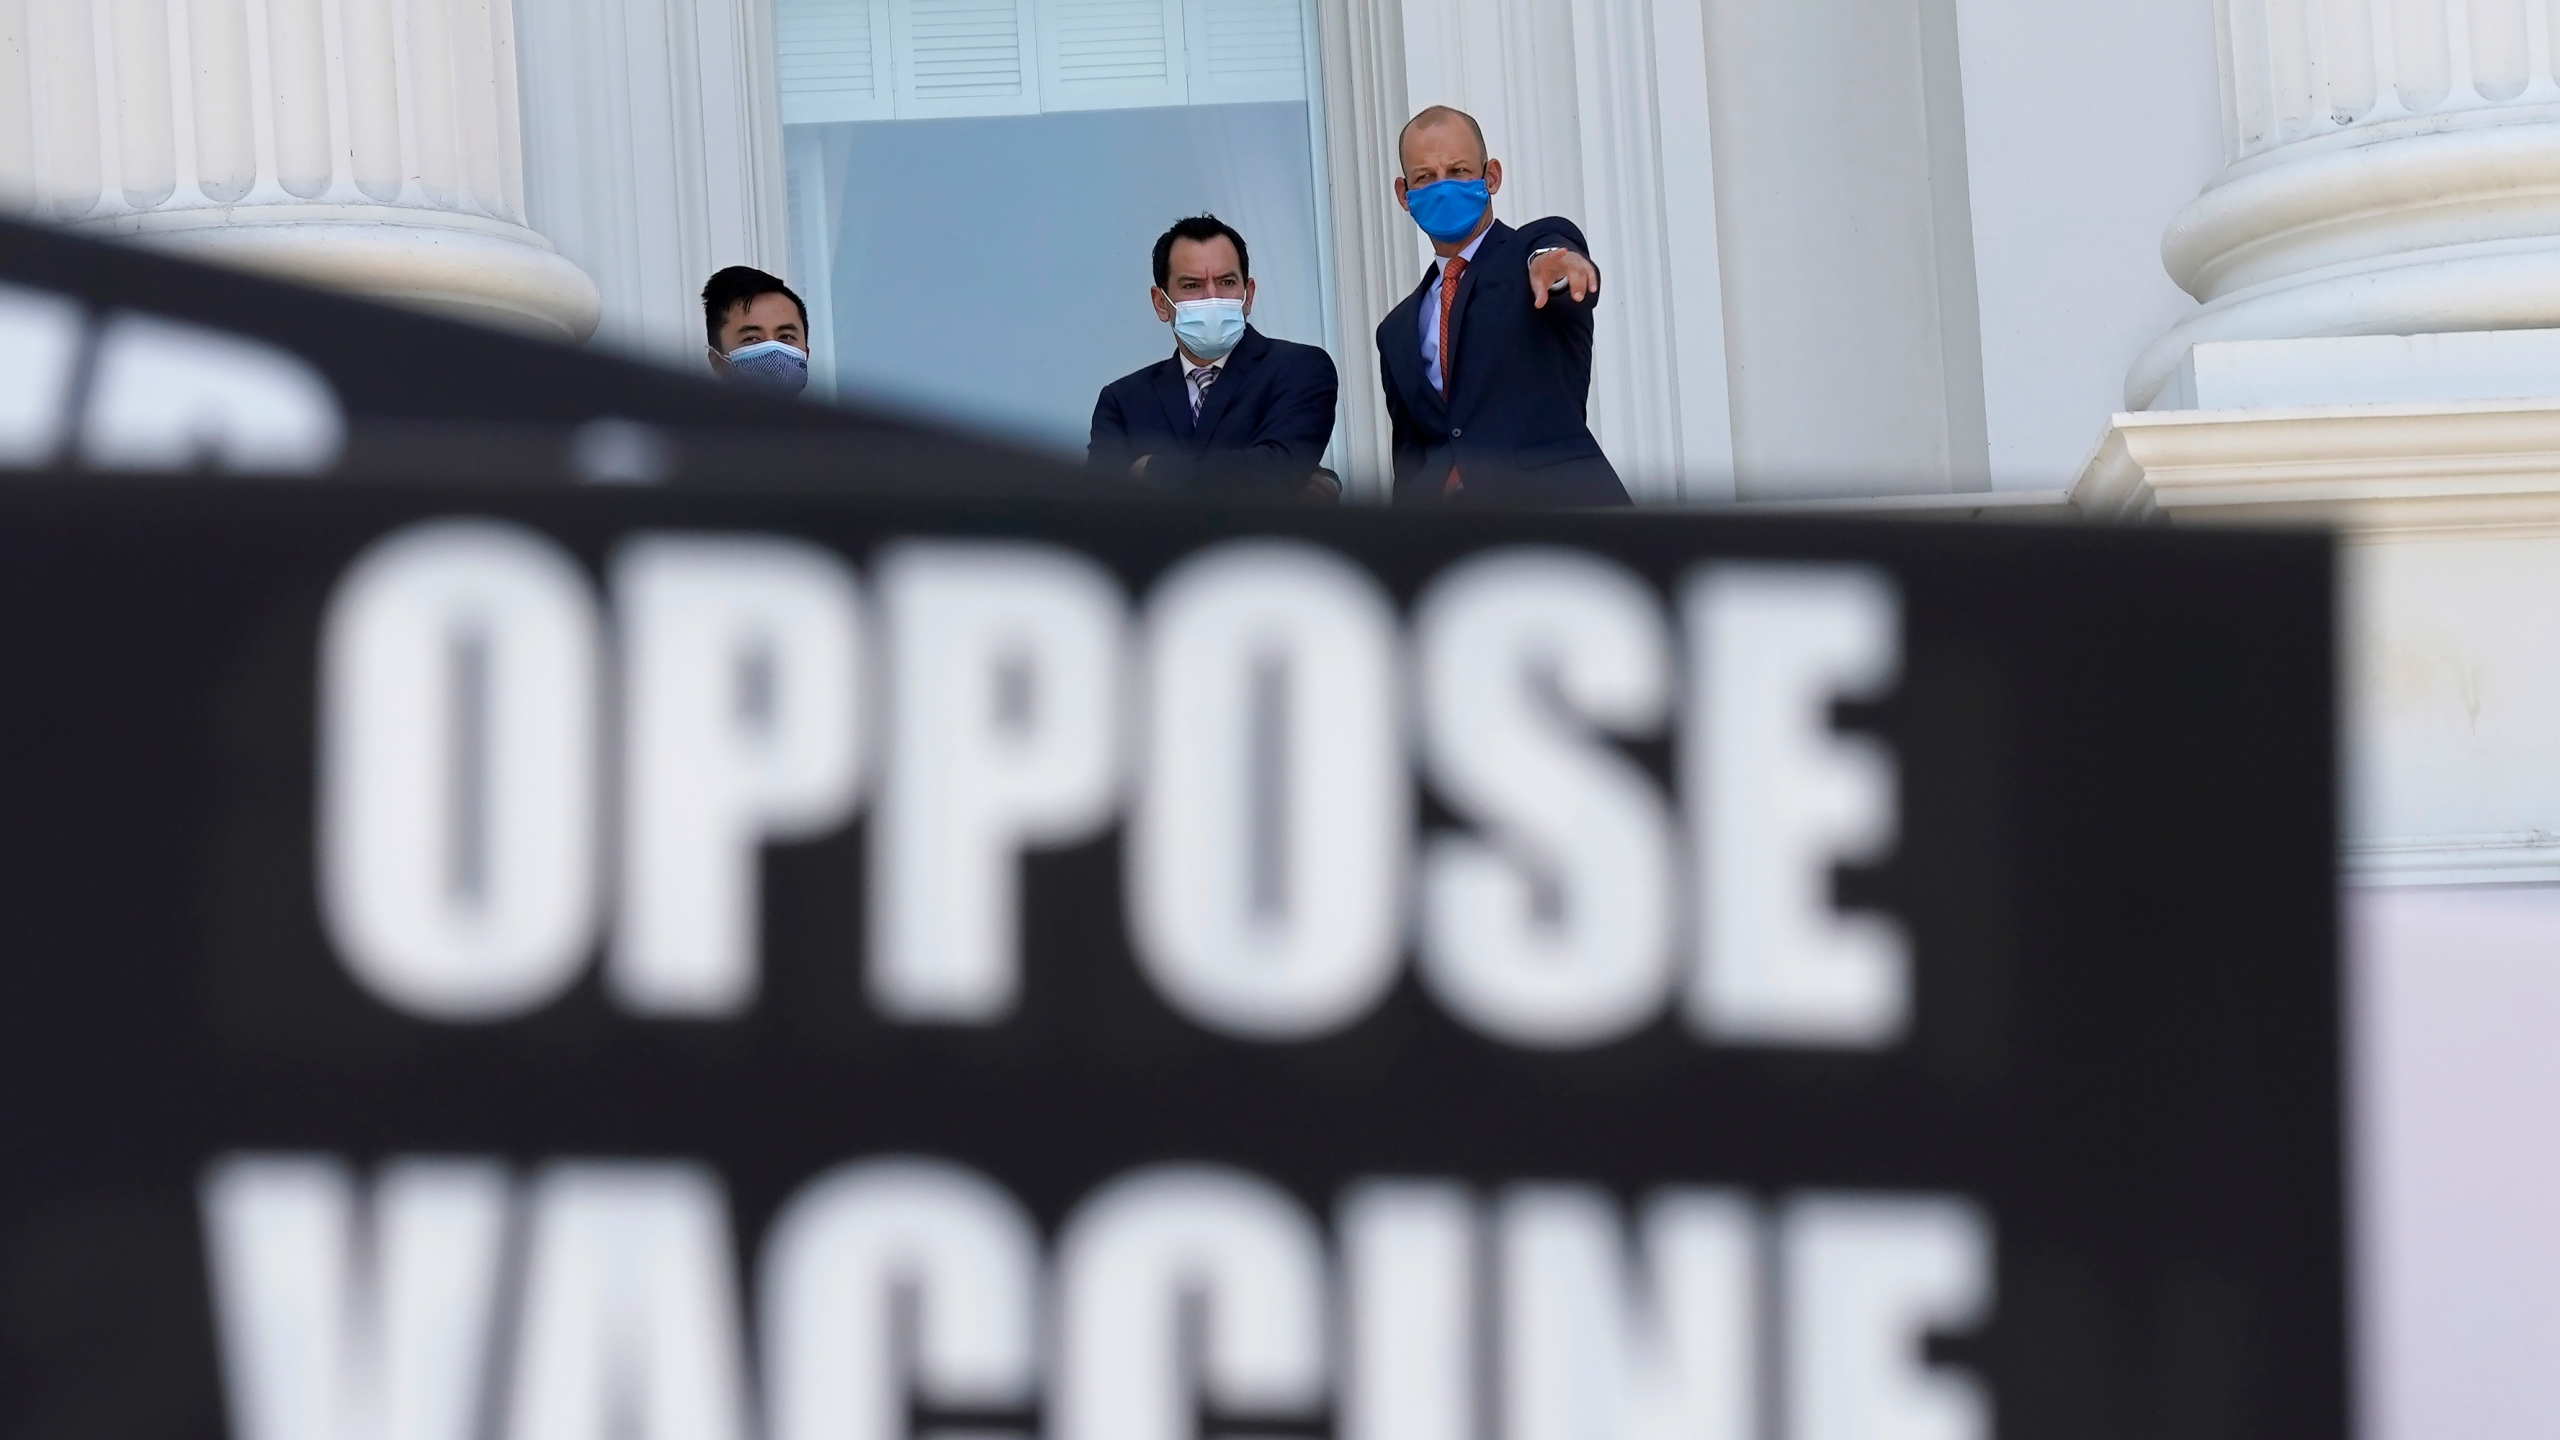 Assembly Speaker Anthony Rendon, of Lakewood, center, and Assemblyman Kevin McCarty, D-Sacramento, right, watch from the balcony outside the Assembly Chambers as protesters opposing vaccine mandates gather at the Capitol in Sacramento. (Rich Pedroncelli/Associated Press)